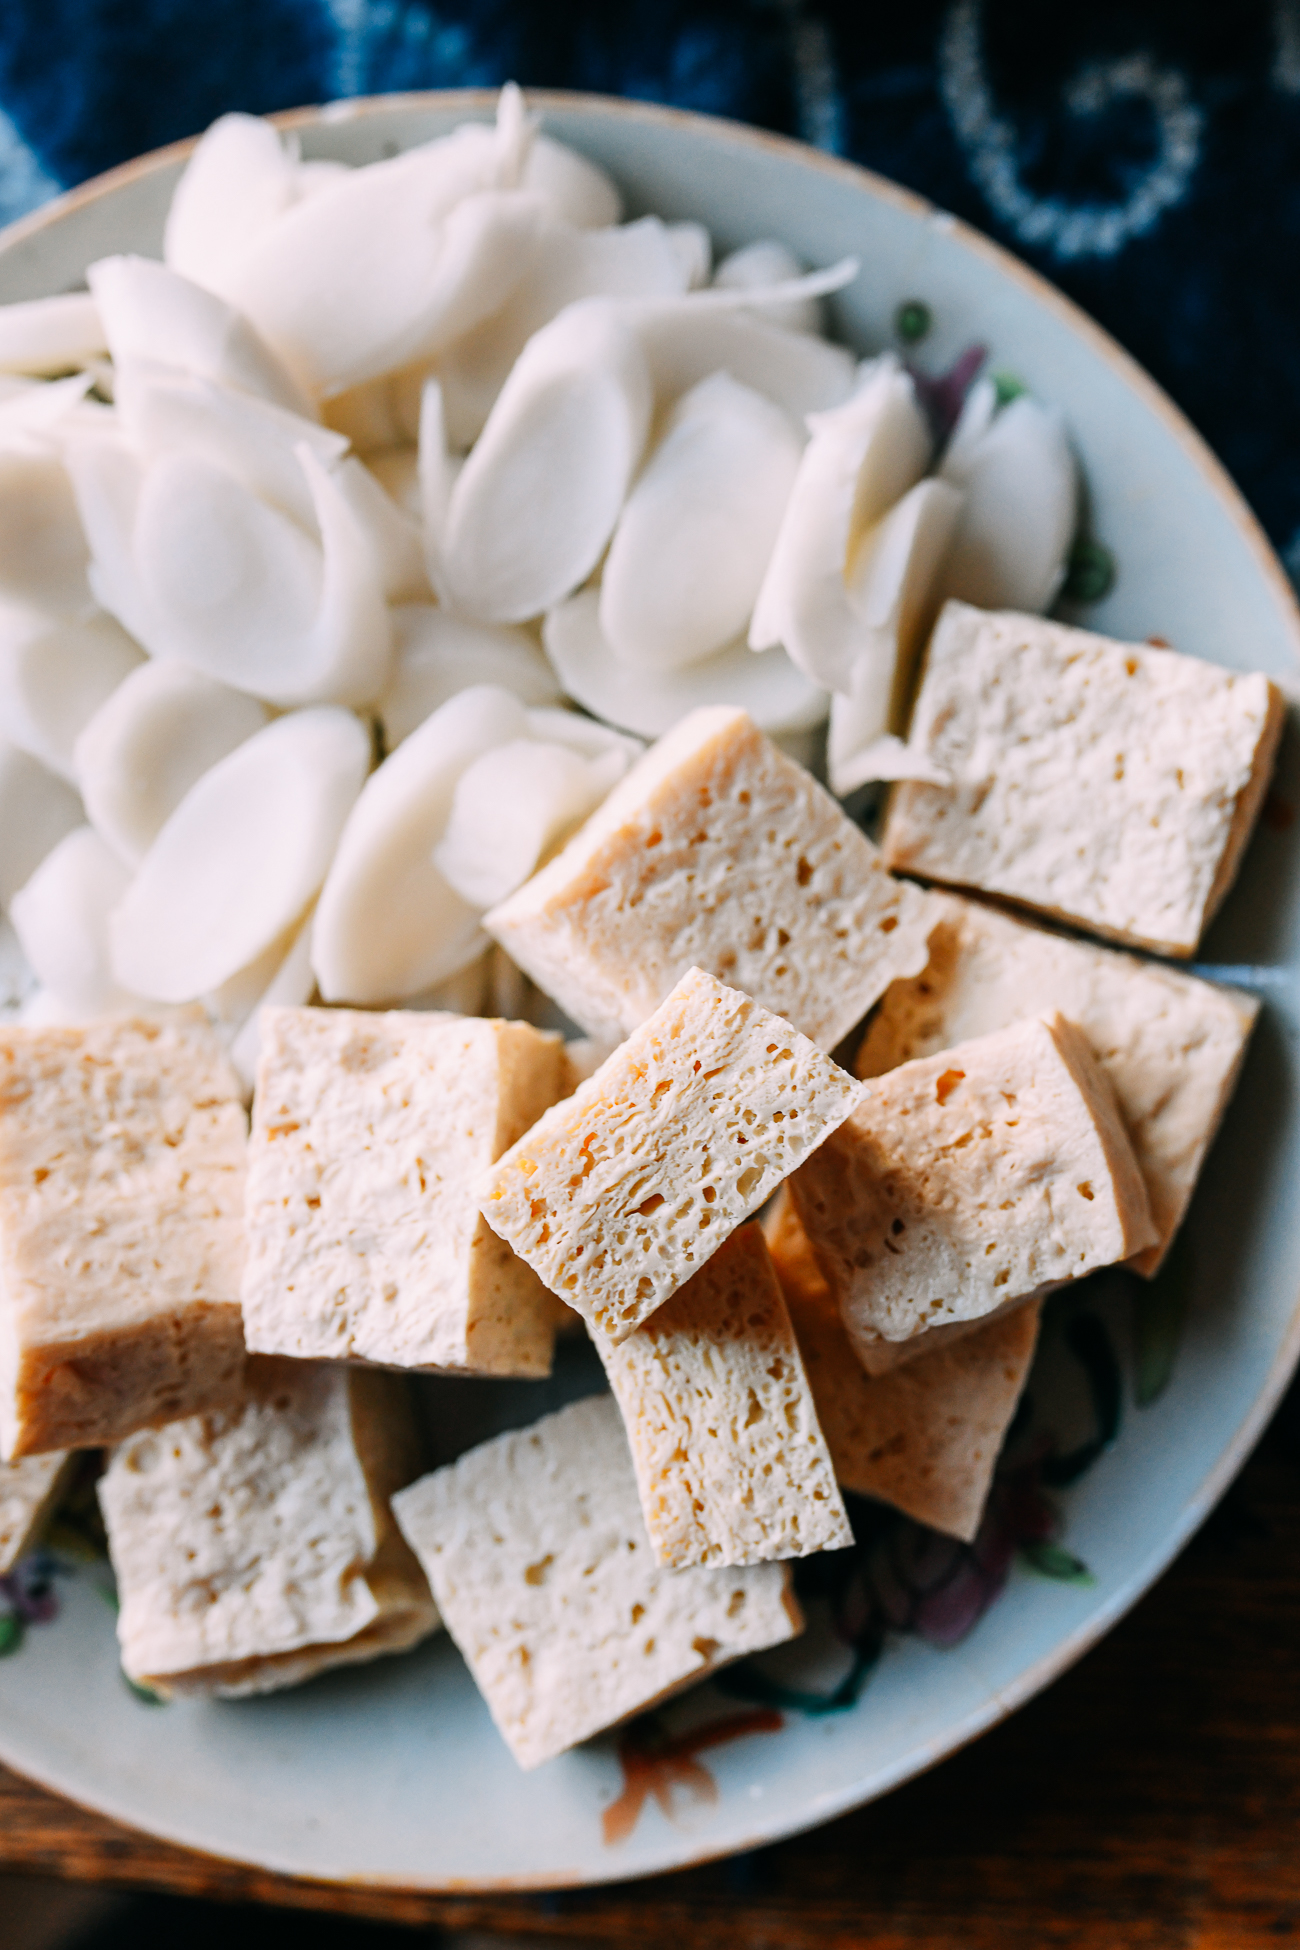 Frozen Tofu: What Is It & How to Make It | The Woks of Life